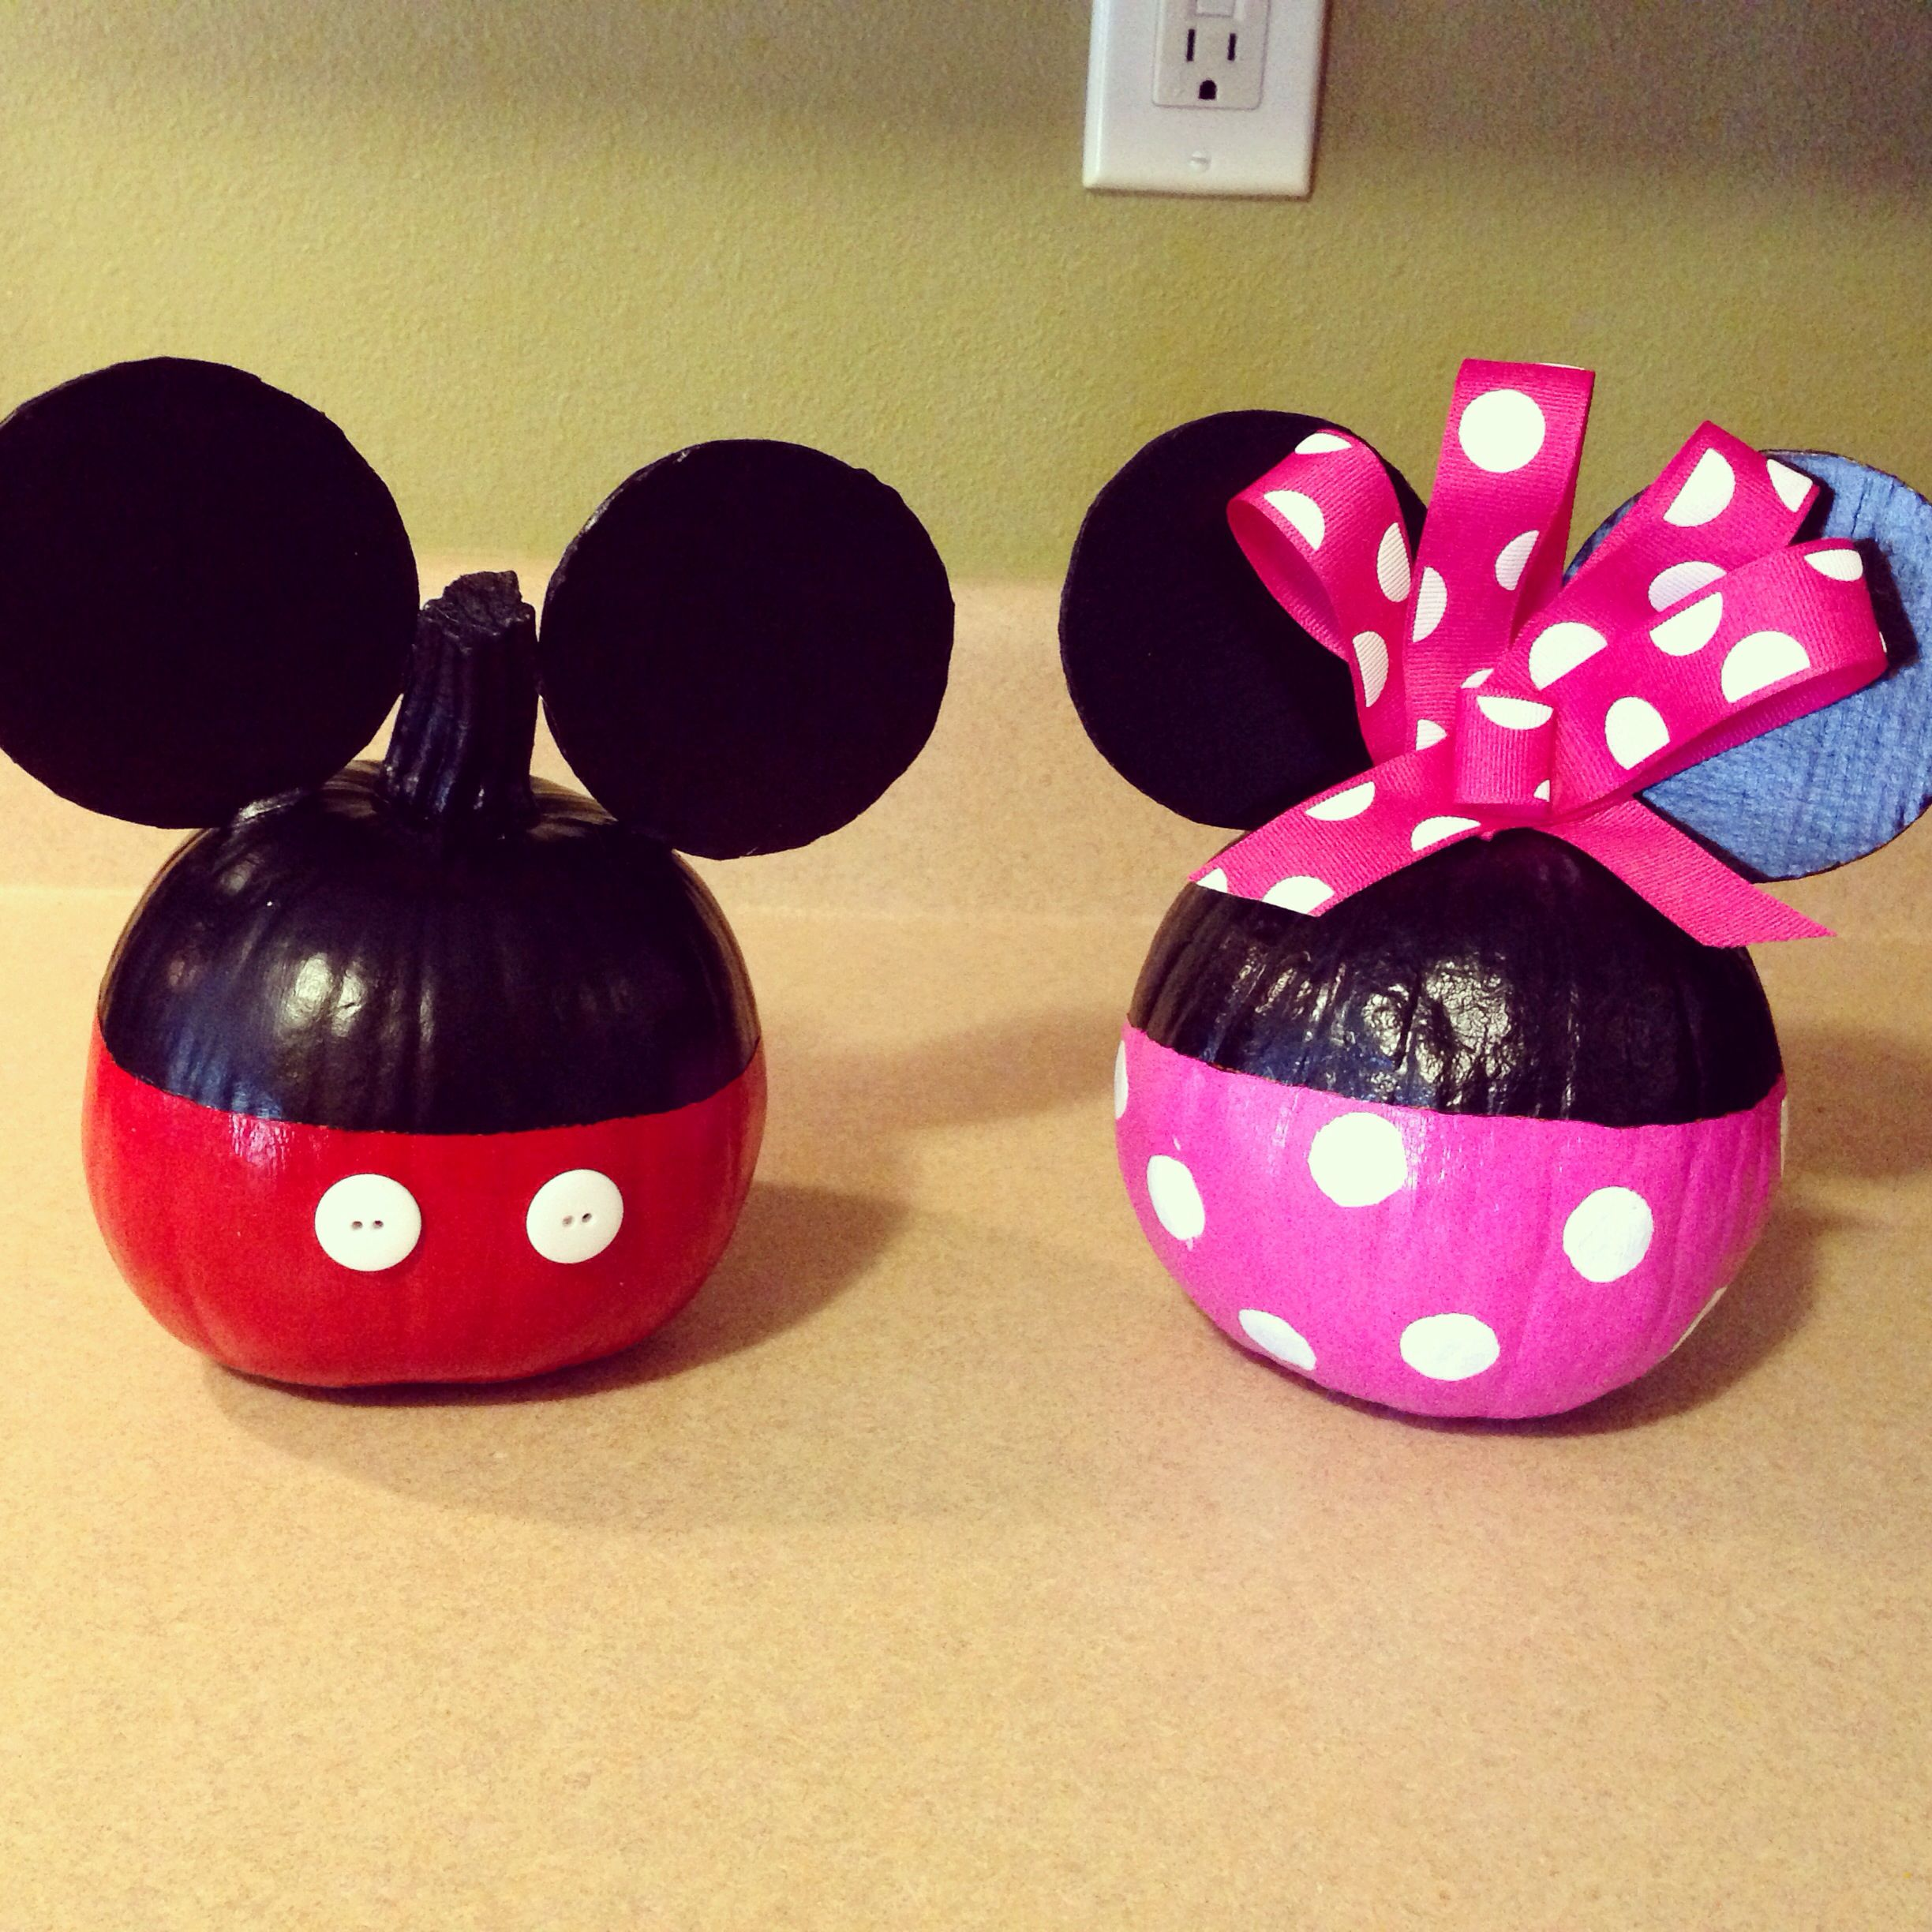 Mickey Mouse pumpkin painting Character pumpkins Pinterest - Minnie Mouse Halloween Decorations